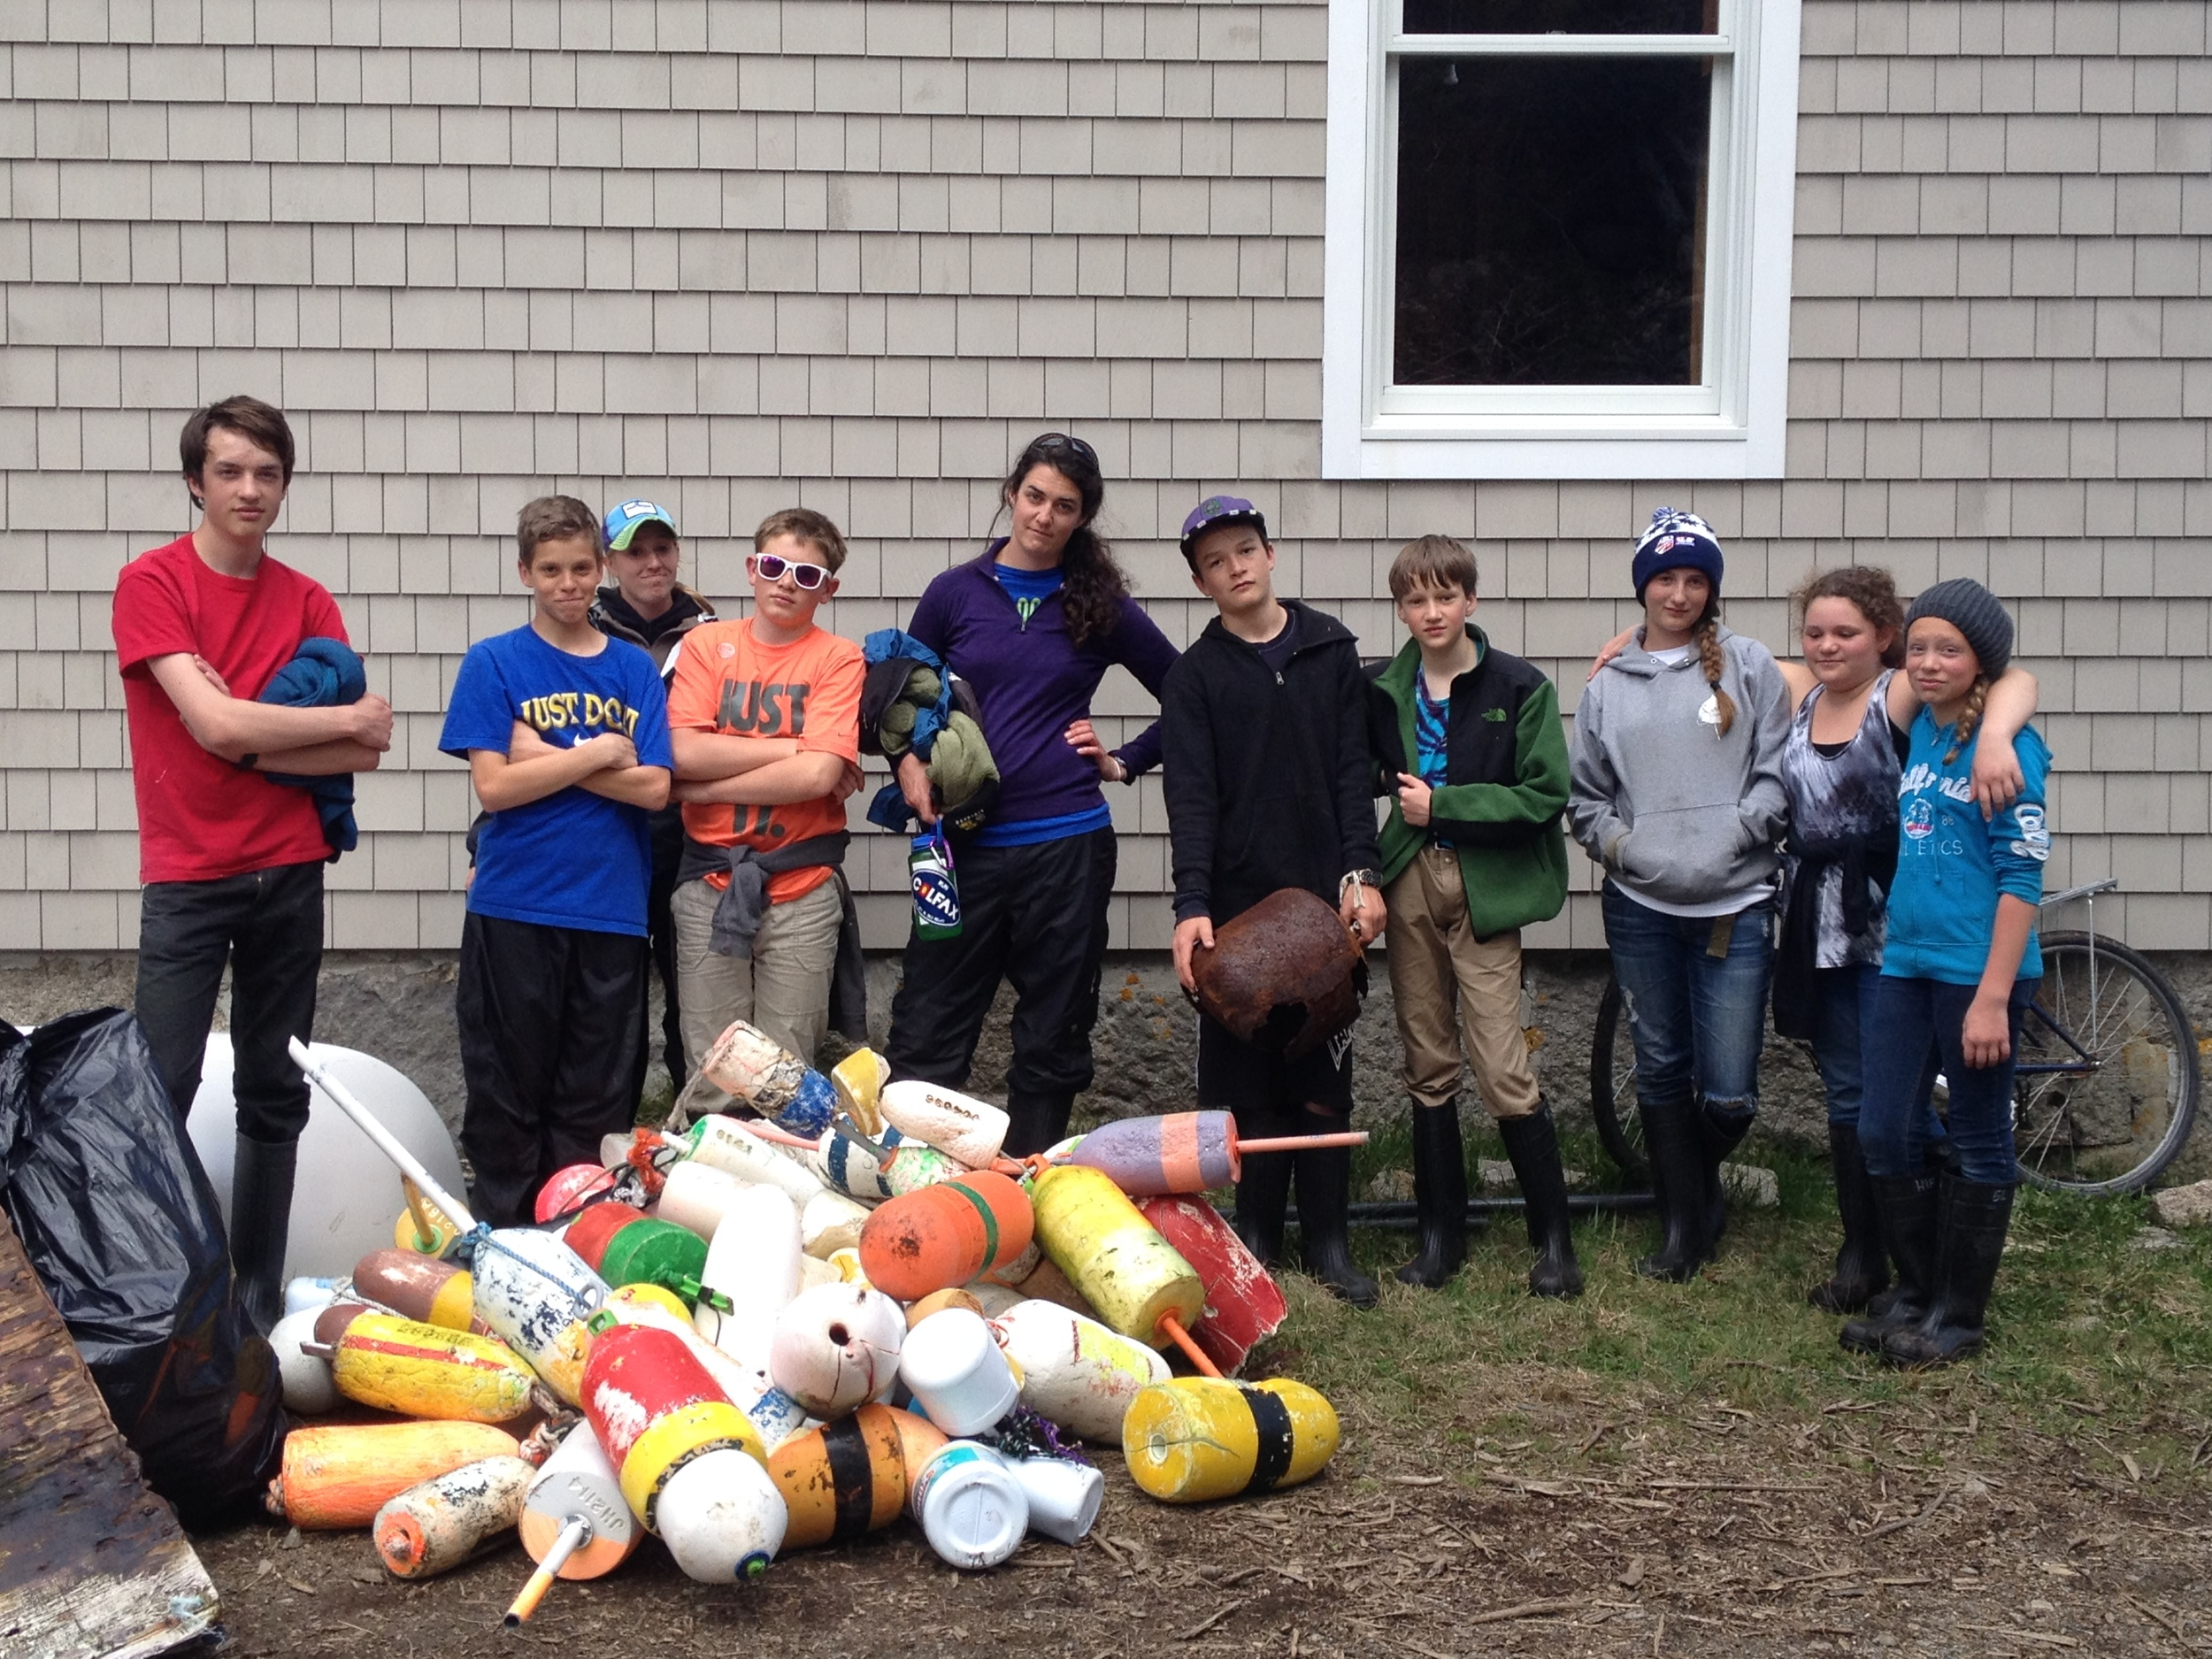 One team of Logan students with their trash haul, which included 68 of the 131 buoys that the full group collected from Hurricane's shoreline